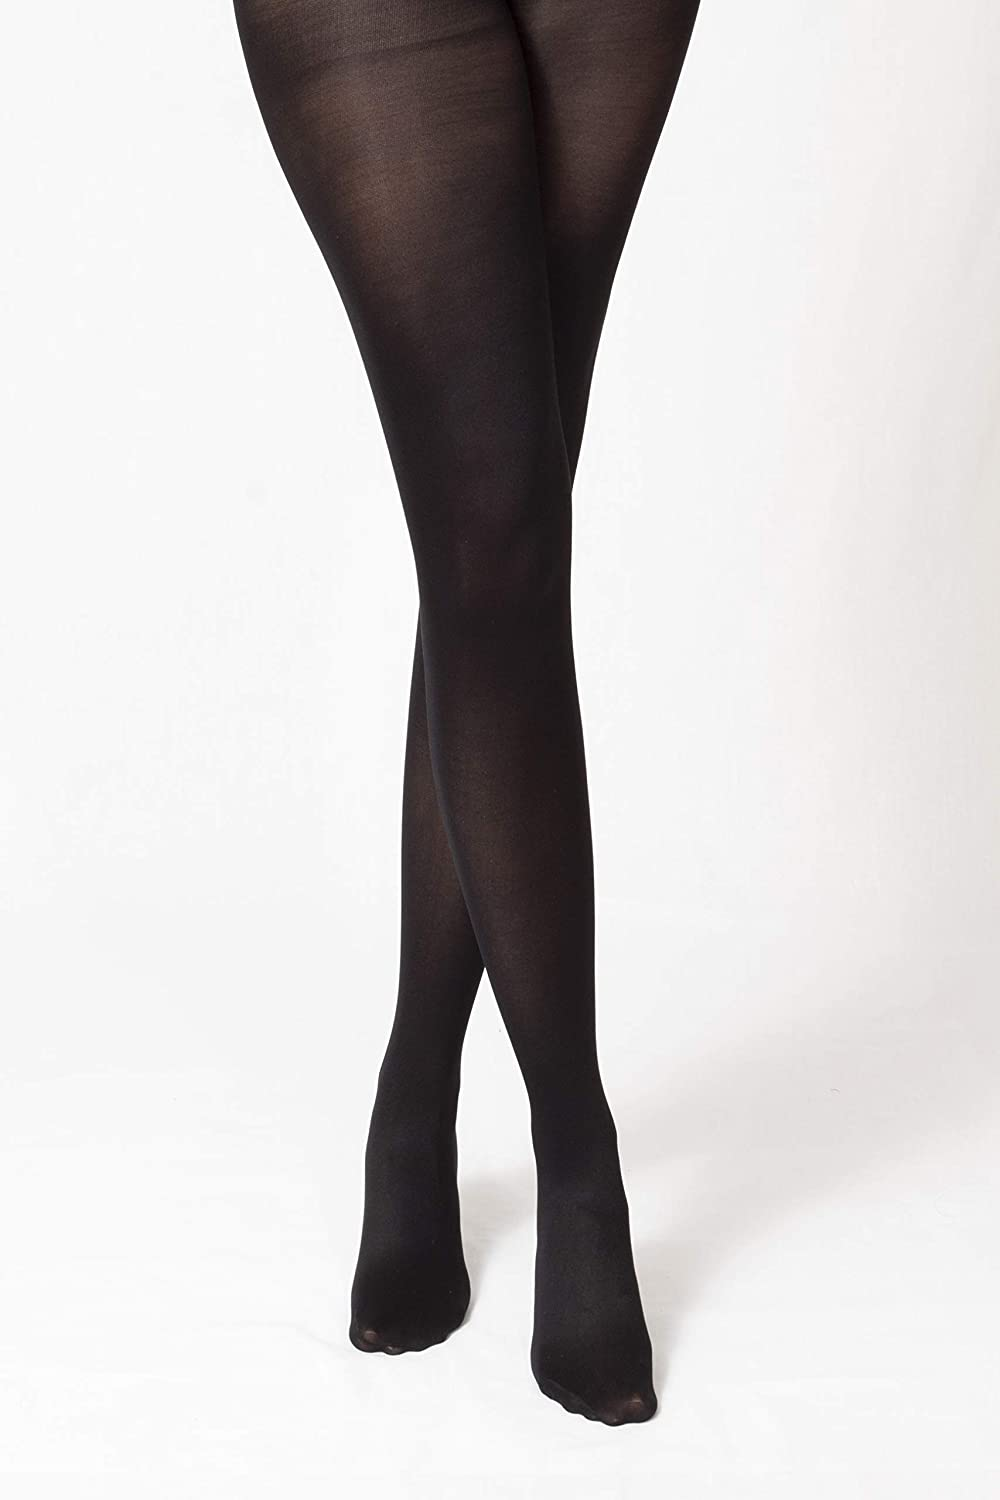 3 Pairs Leamel All Day Comfort Run Resistant 40 Denier Opaque Matte Finish Tights Multipack